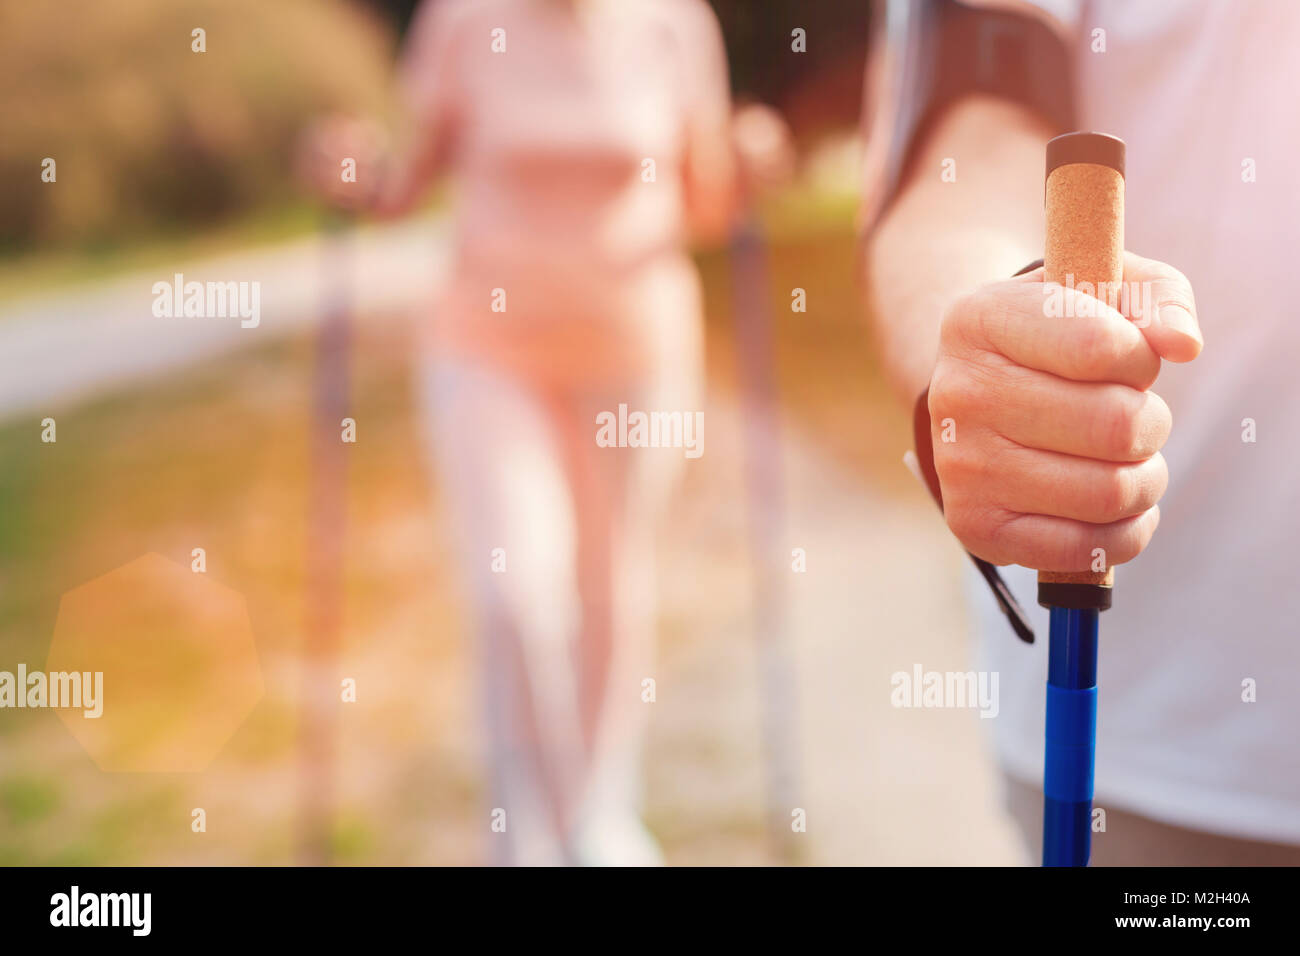 Old Man With Crutch Stock Photos & Old Man With Crutch Stock Images